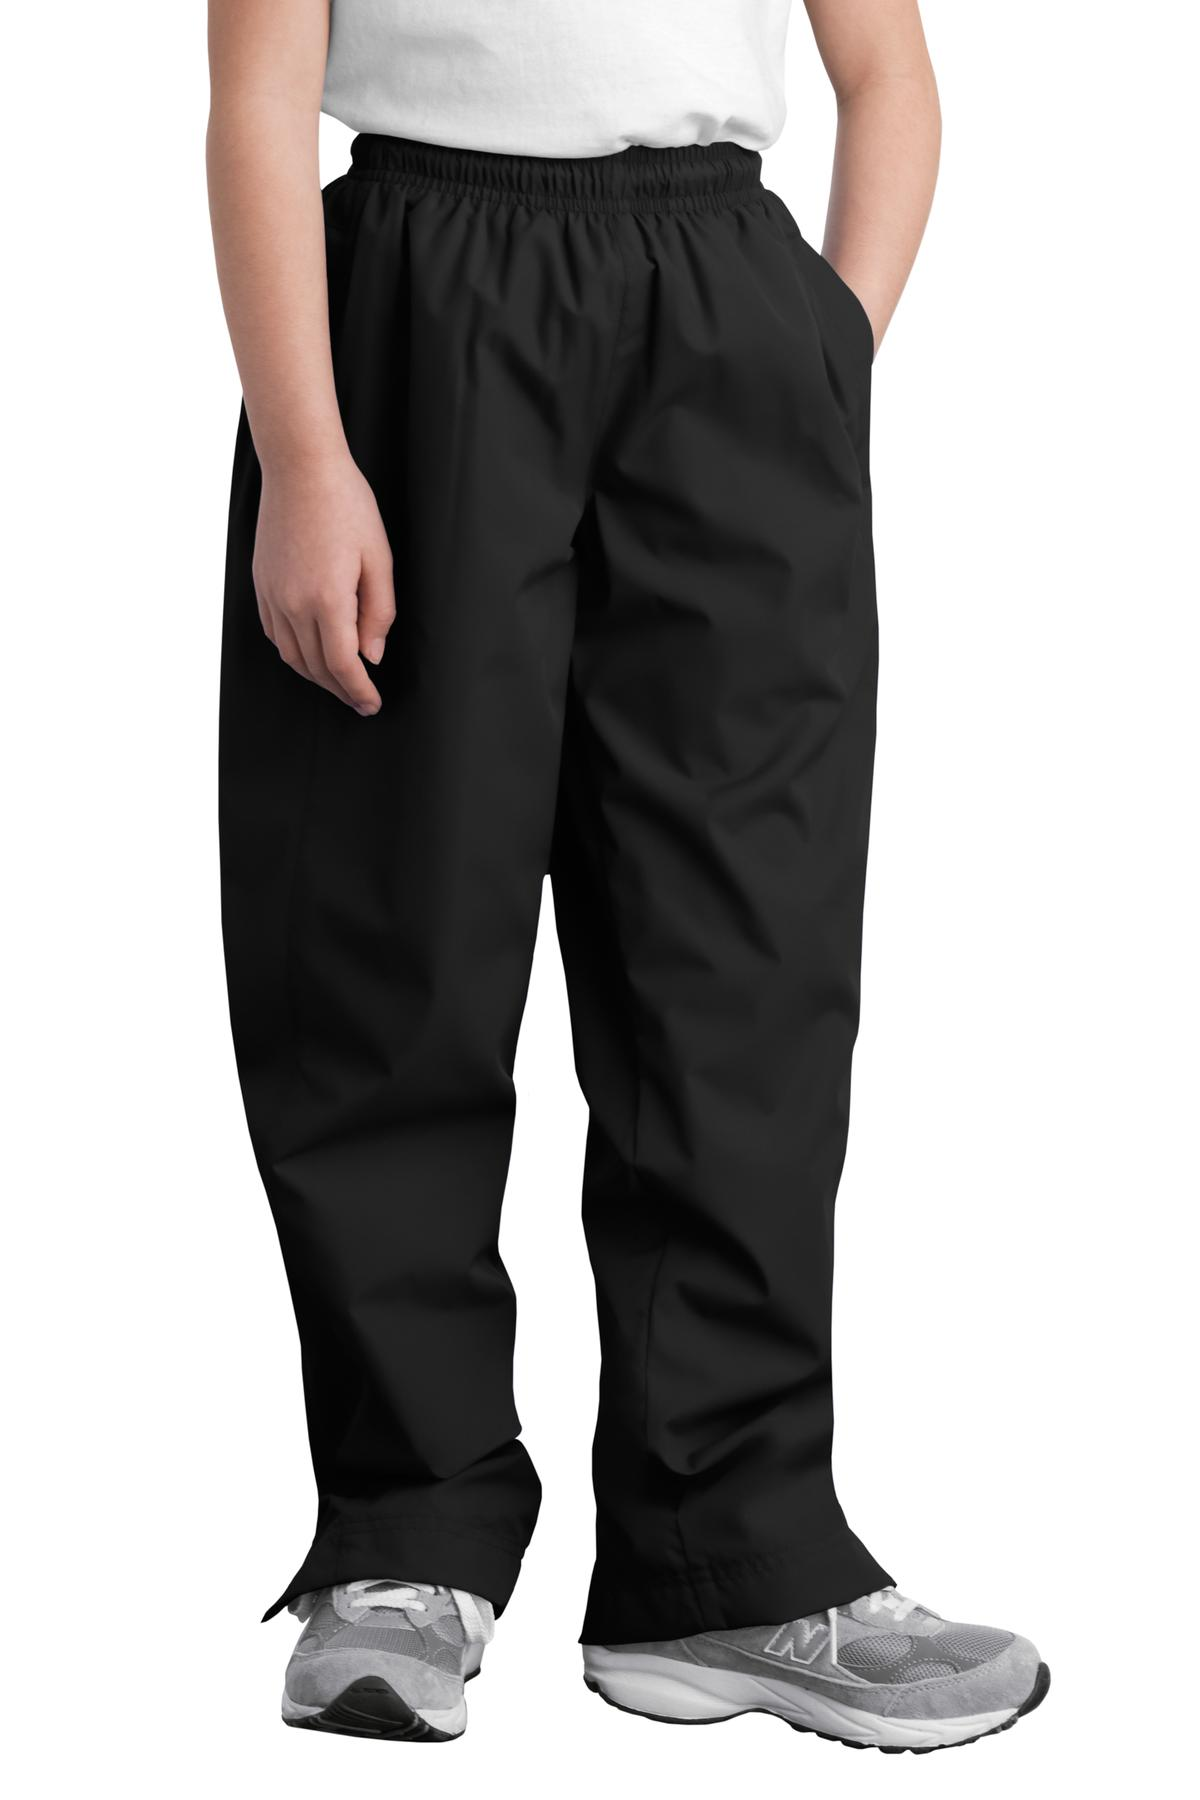 Sport-Tek ®  Youth Wind Pant. YPST74 - Black